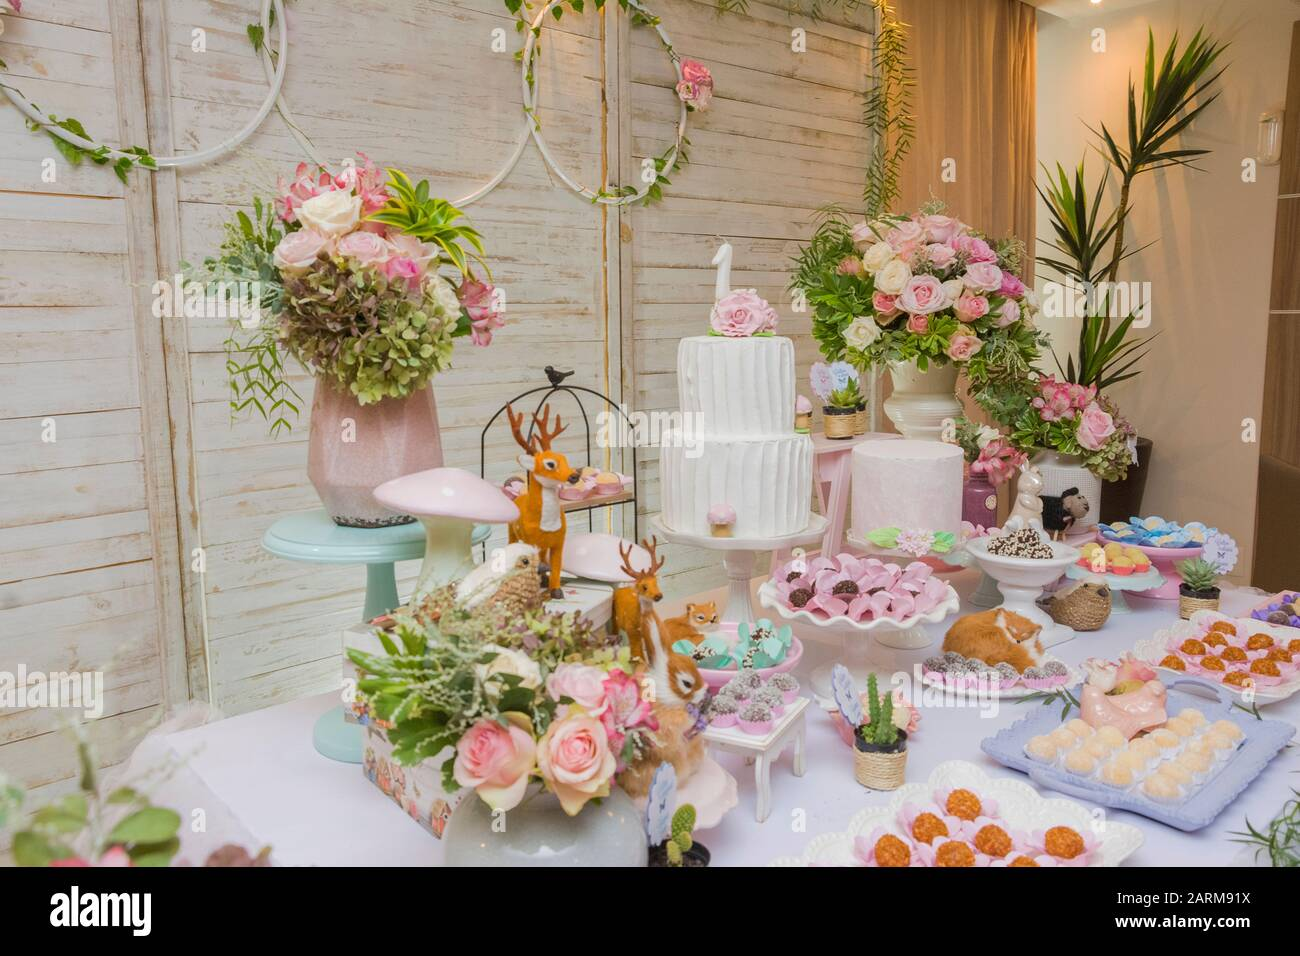 Details Of Luxurious Table Of Sweets And Birthday Cake Decorated With Flower Arrangements And Delicate Wild Animals With Light Wood Panel In The Backg Stock Photo Alamy